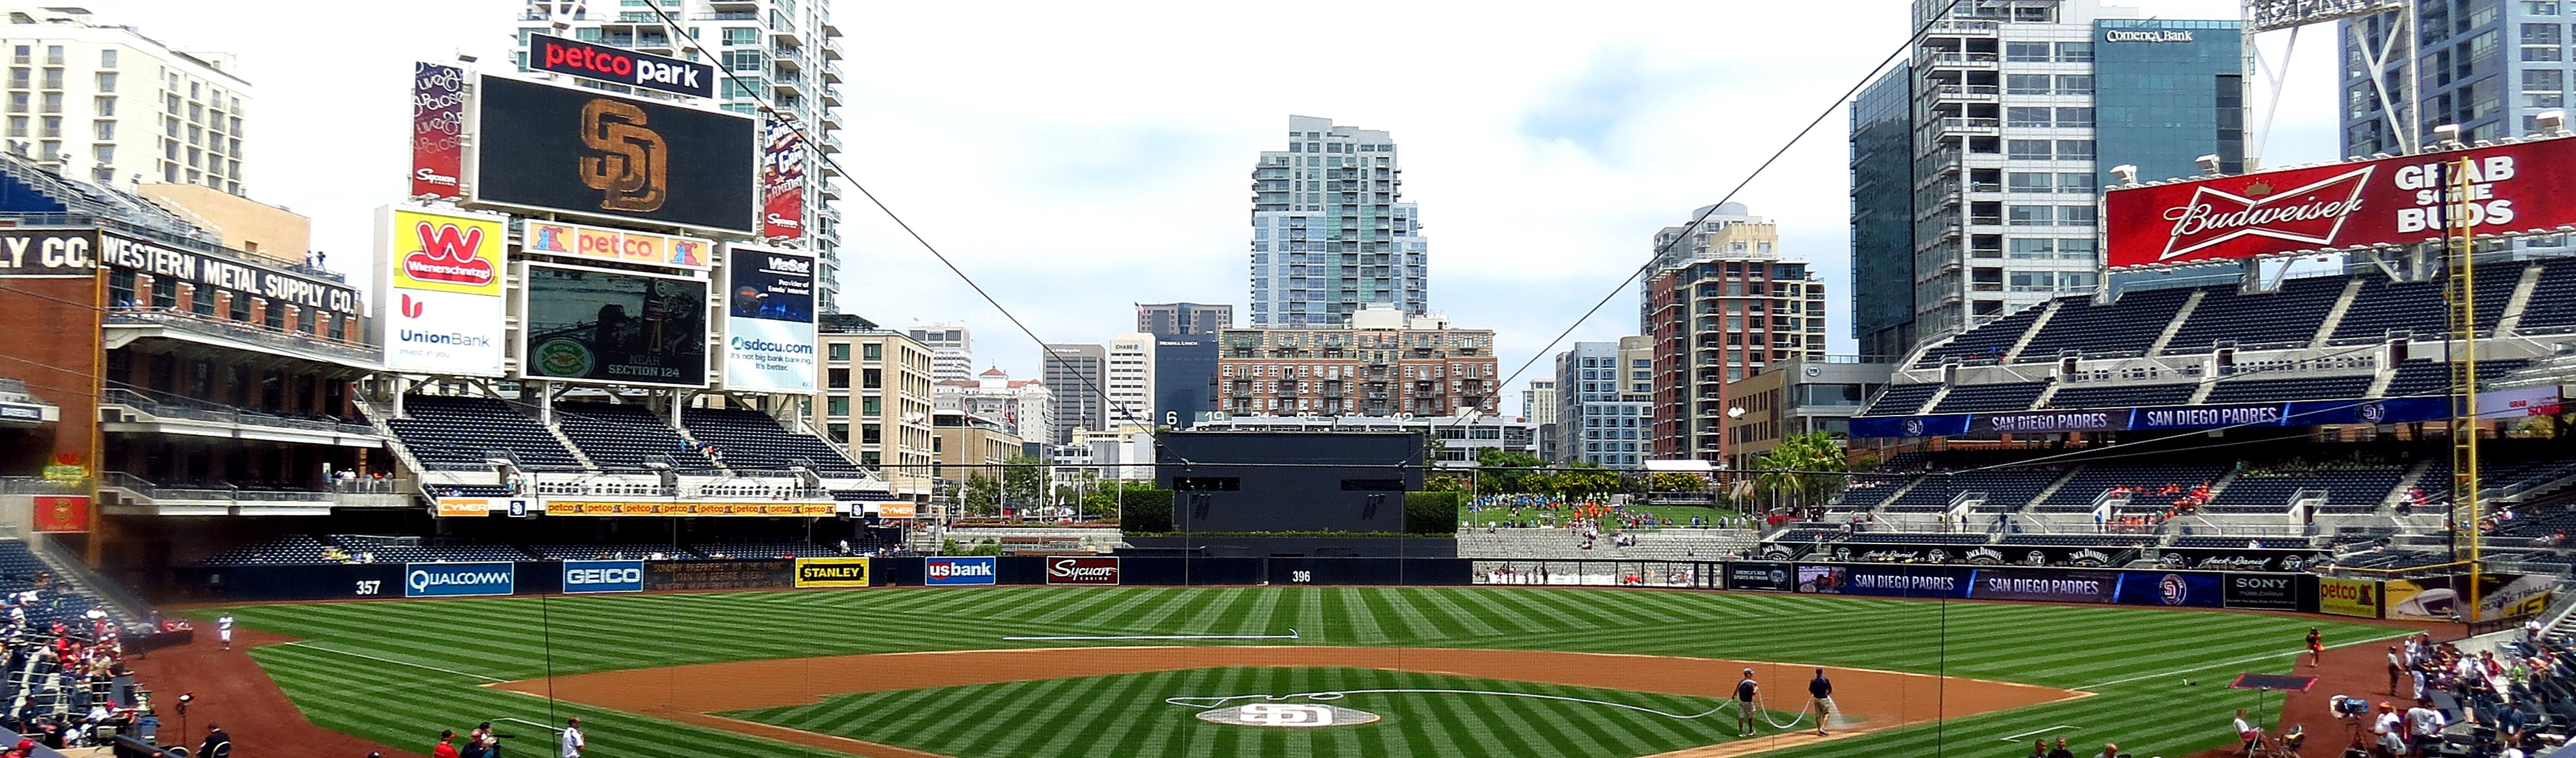 Best baseball stadiums to visit in America